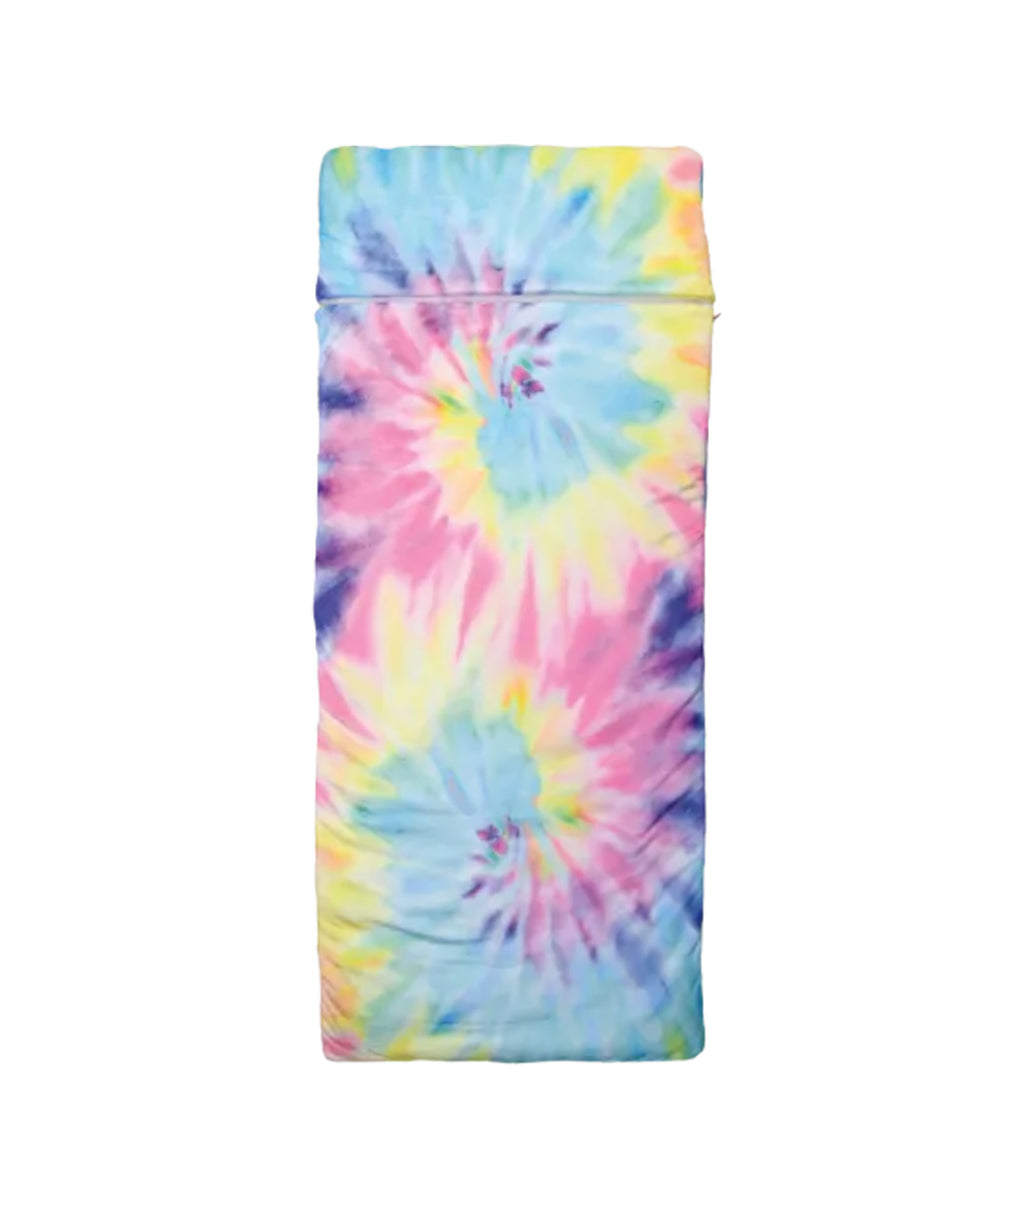 iScream Pastel Tie Dye Sleeping Bag